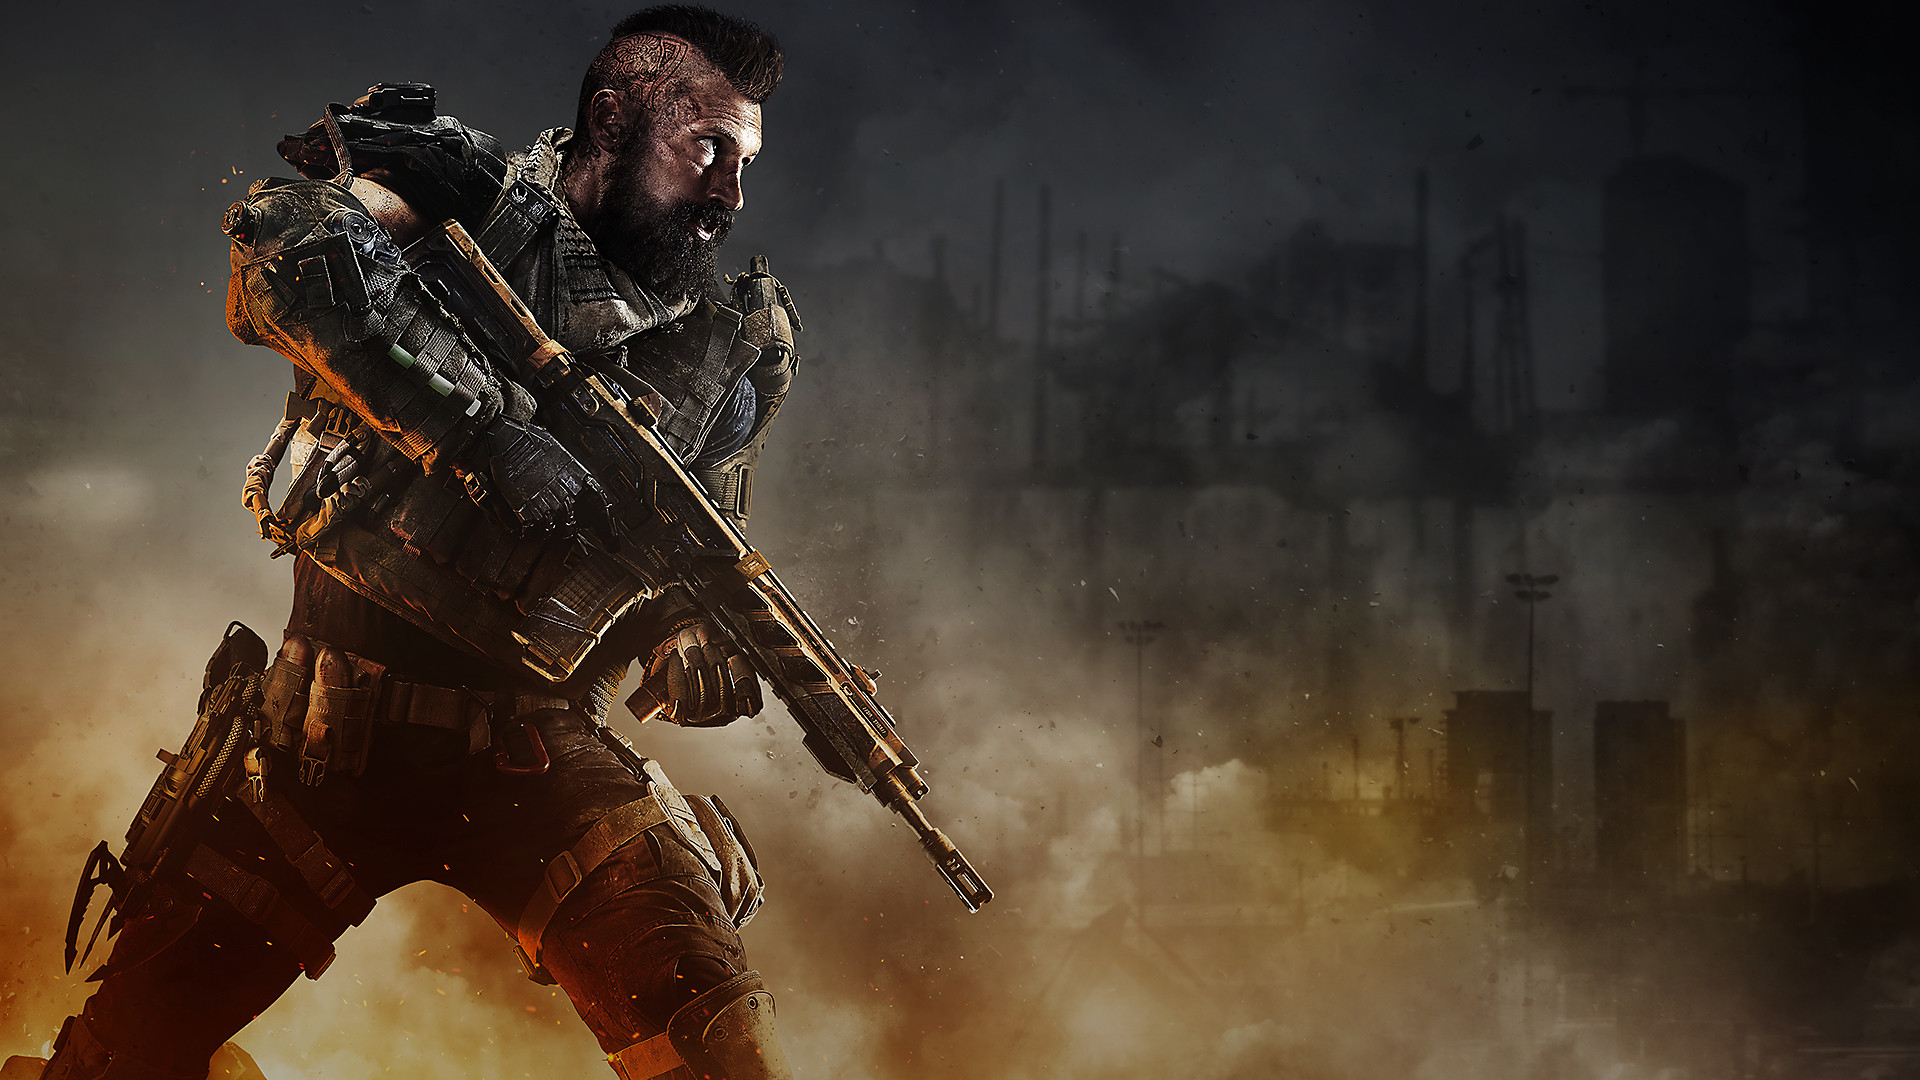 Can you bookmark a game from your recent games? : Blackops4